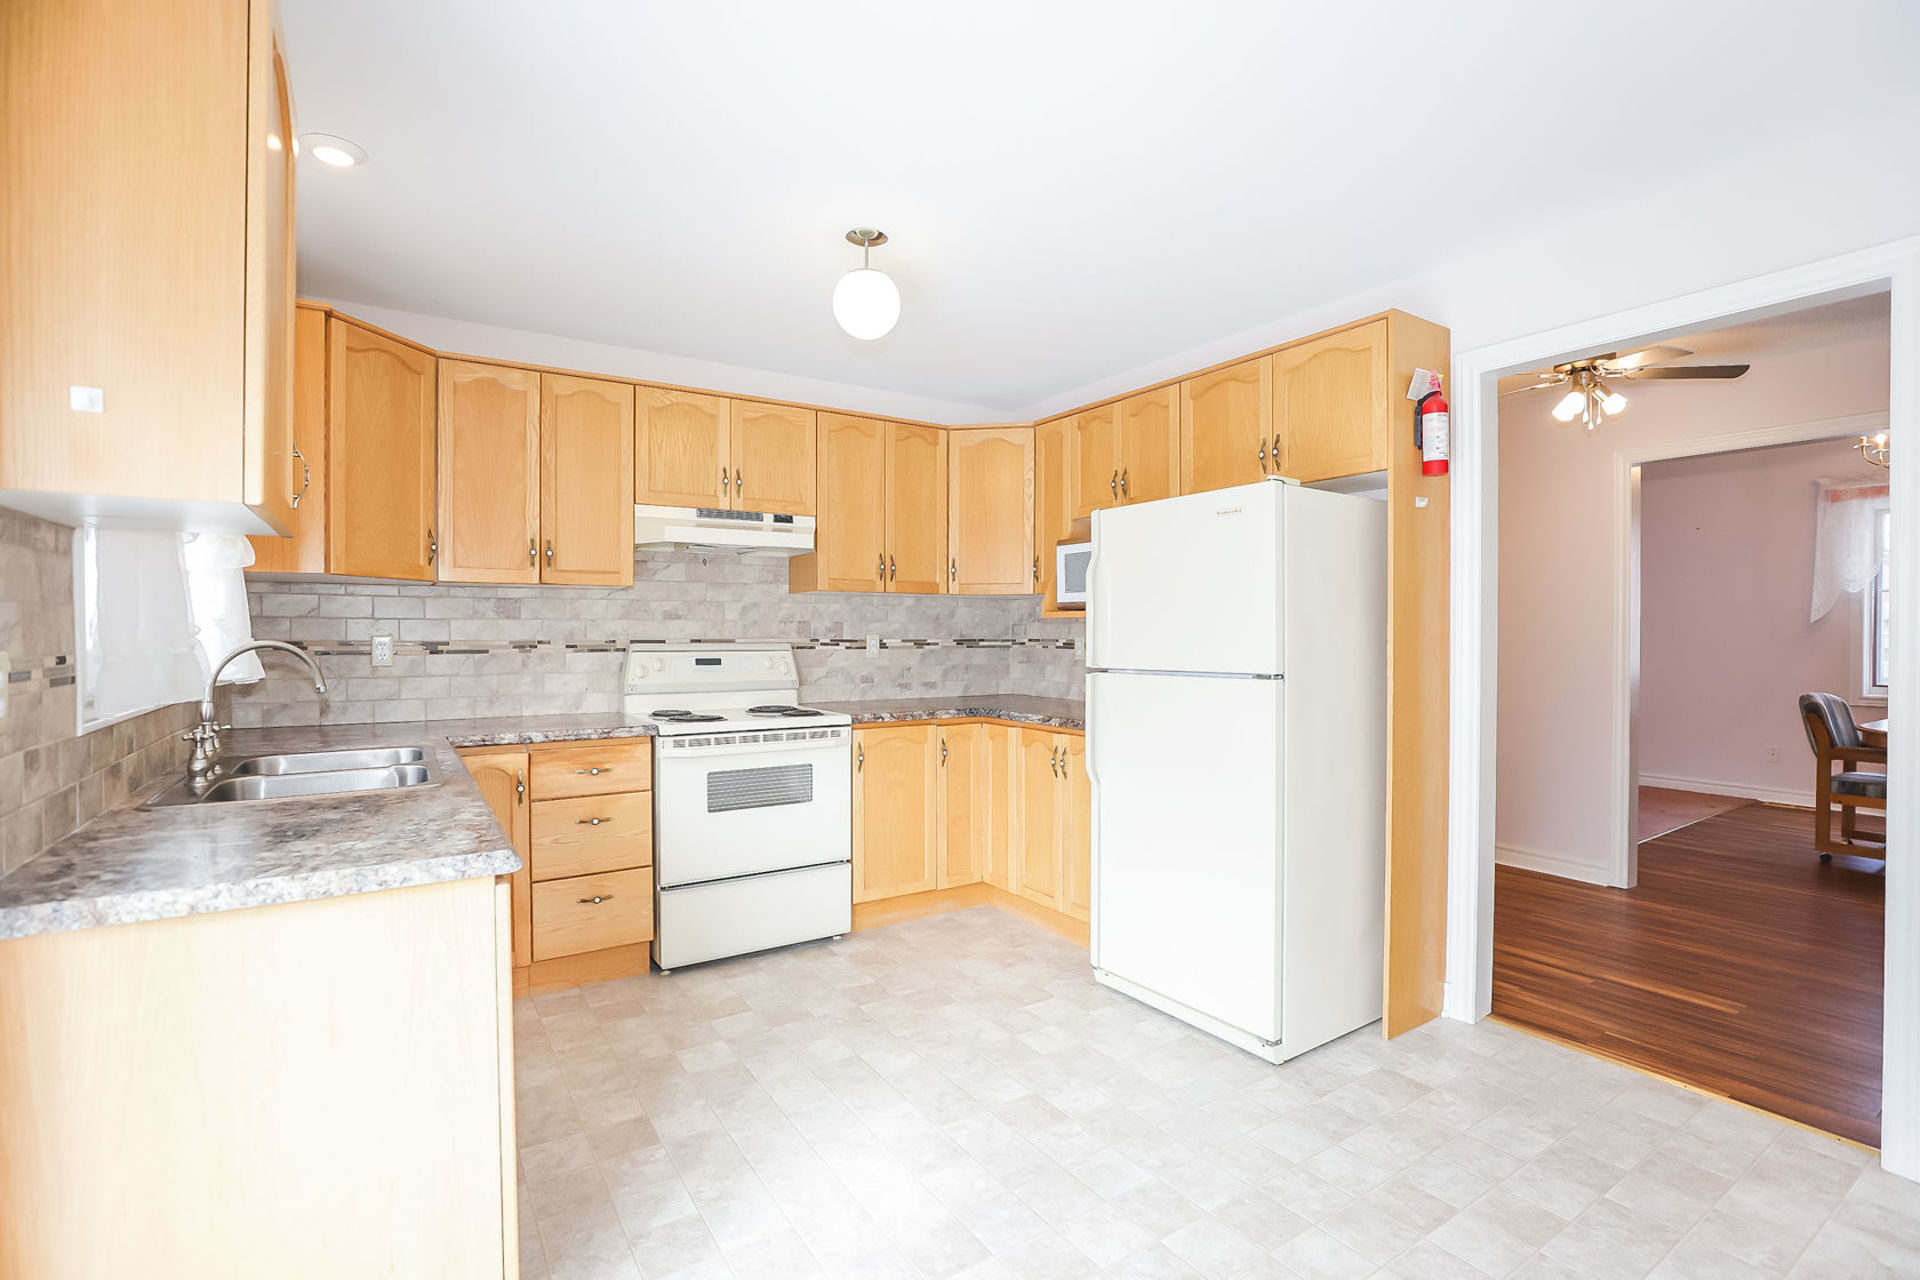 virtual-tour-292122-10 at 47 Colonial Cresent, Grimsby